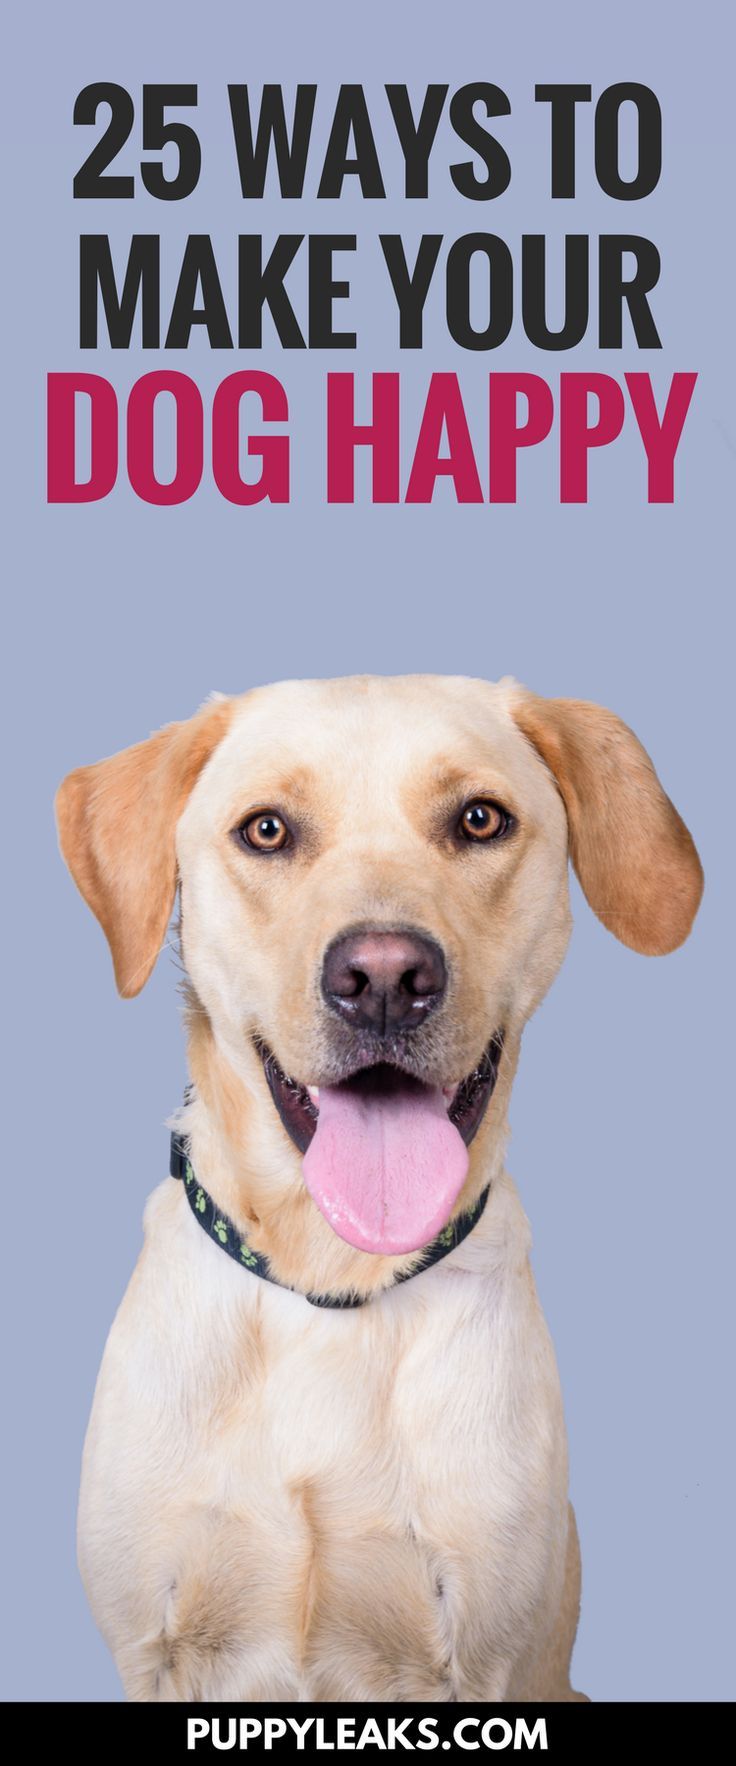 Looking for some simple ways to improve your dogs life? Here's 25 ways to make your dog happy. Fun games, toys & activities for your dog. Dog boredom buster ideas. Methods to keep your dog happy, healthy & entertained.